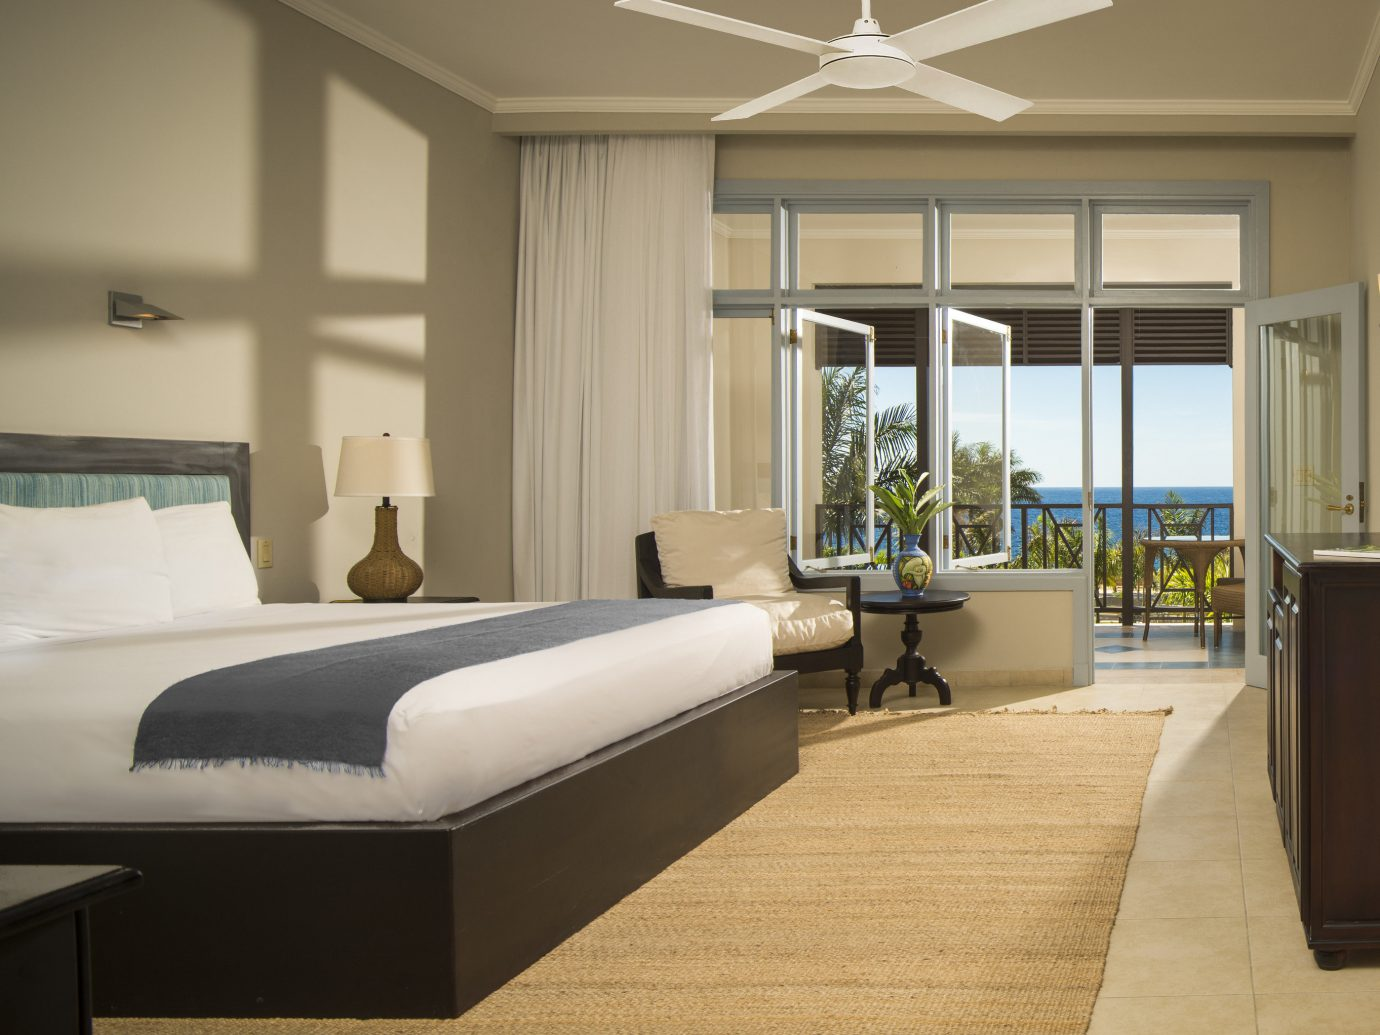 Bedroom at The Cliff Hotel